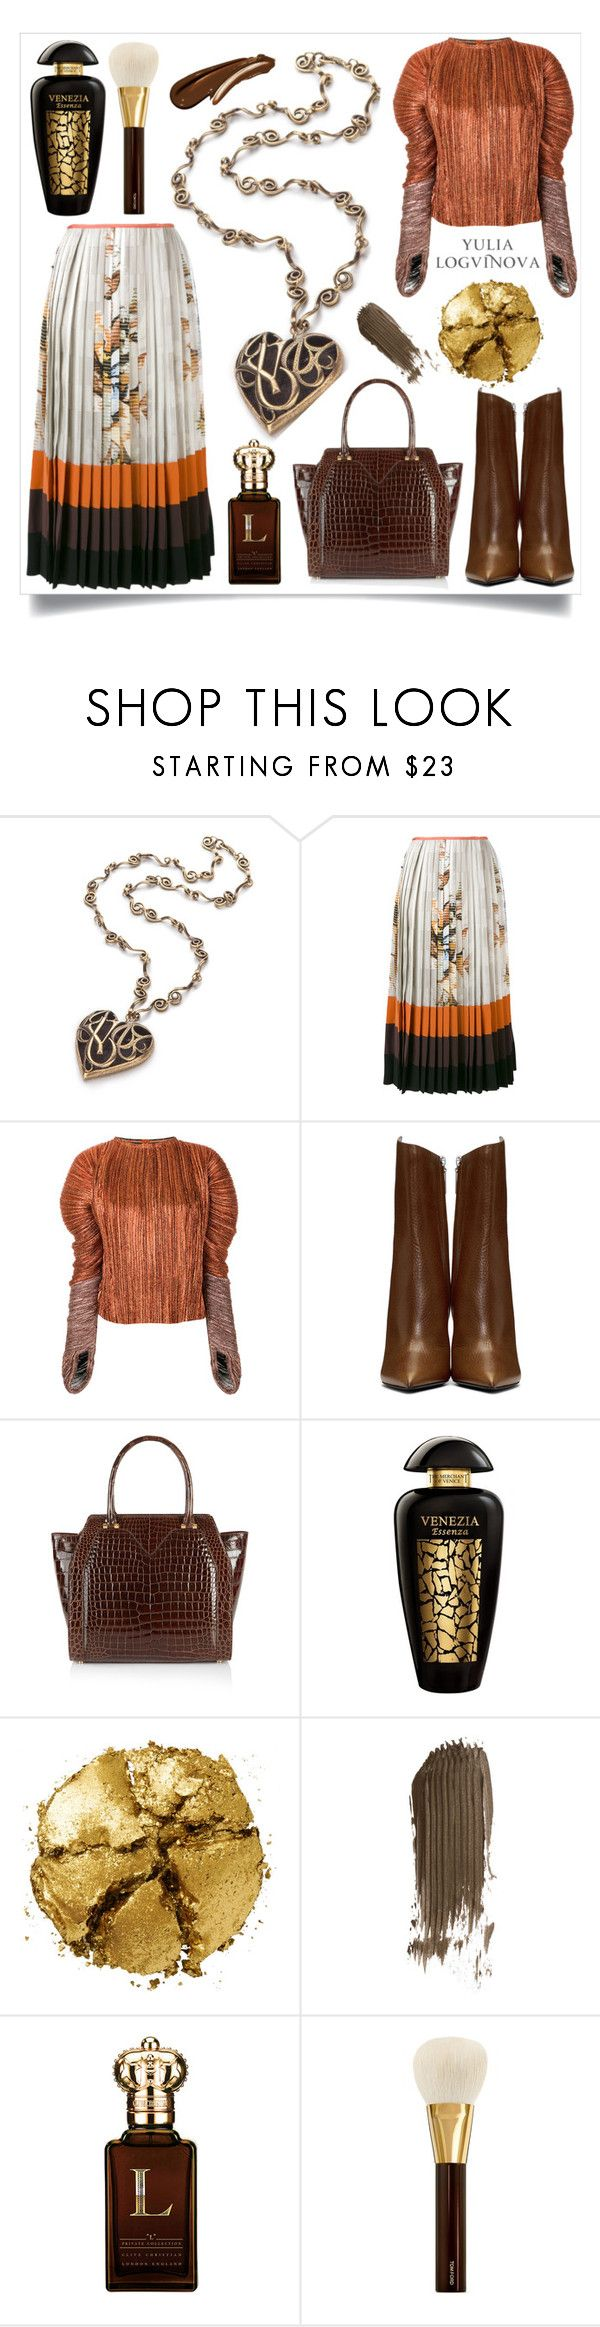 Jewelry by Yulia Logvinova @okatava by okatava on Polyvore featuring мода, Haider Ackermann, Fendi, Yves Saint Laurent, Rubeus, Pat McGrath, Tom Ford, The Merchant Of Venice and Clive Christian